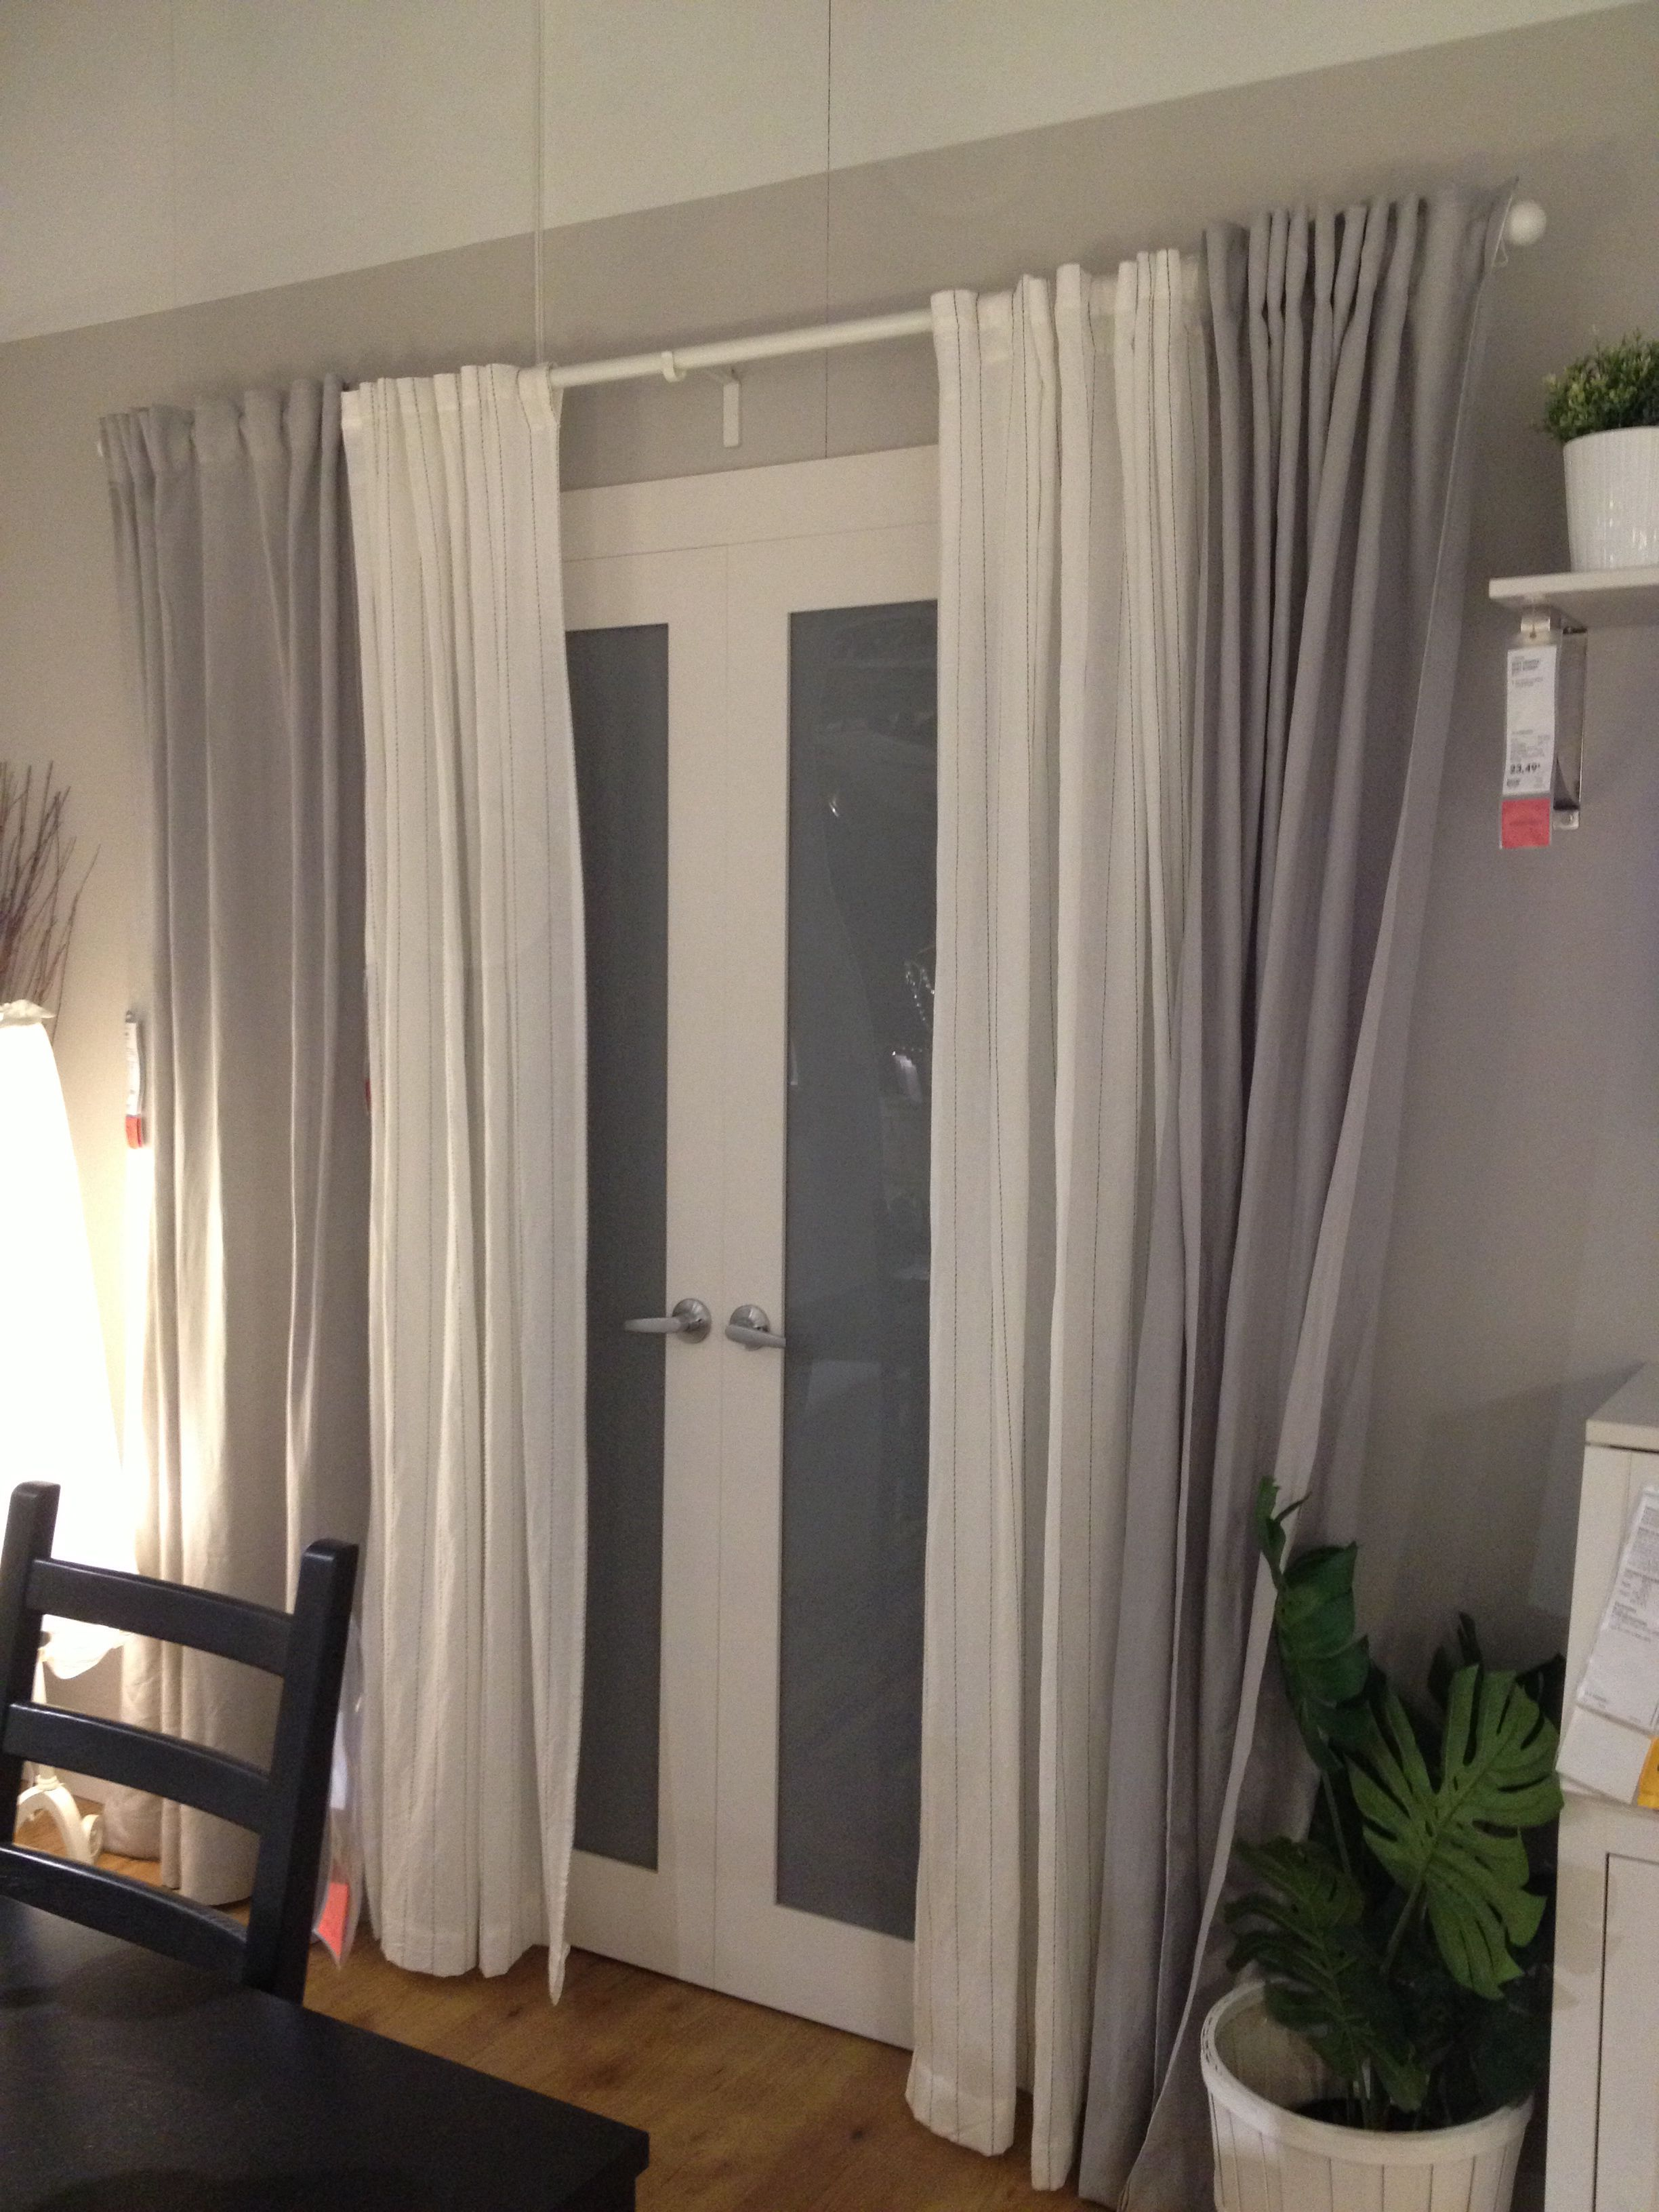 back/patio door curtains -let sunlight in during the day -keep people CAJQIBN